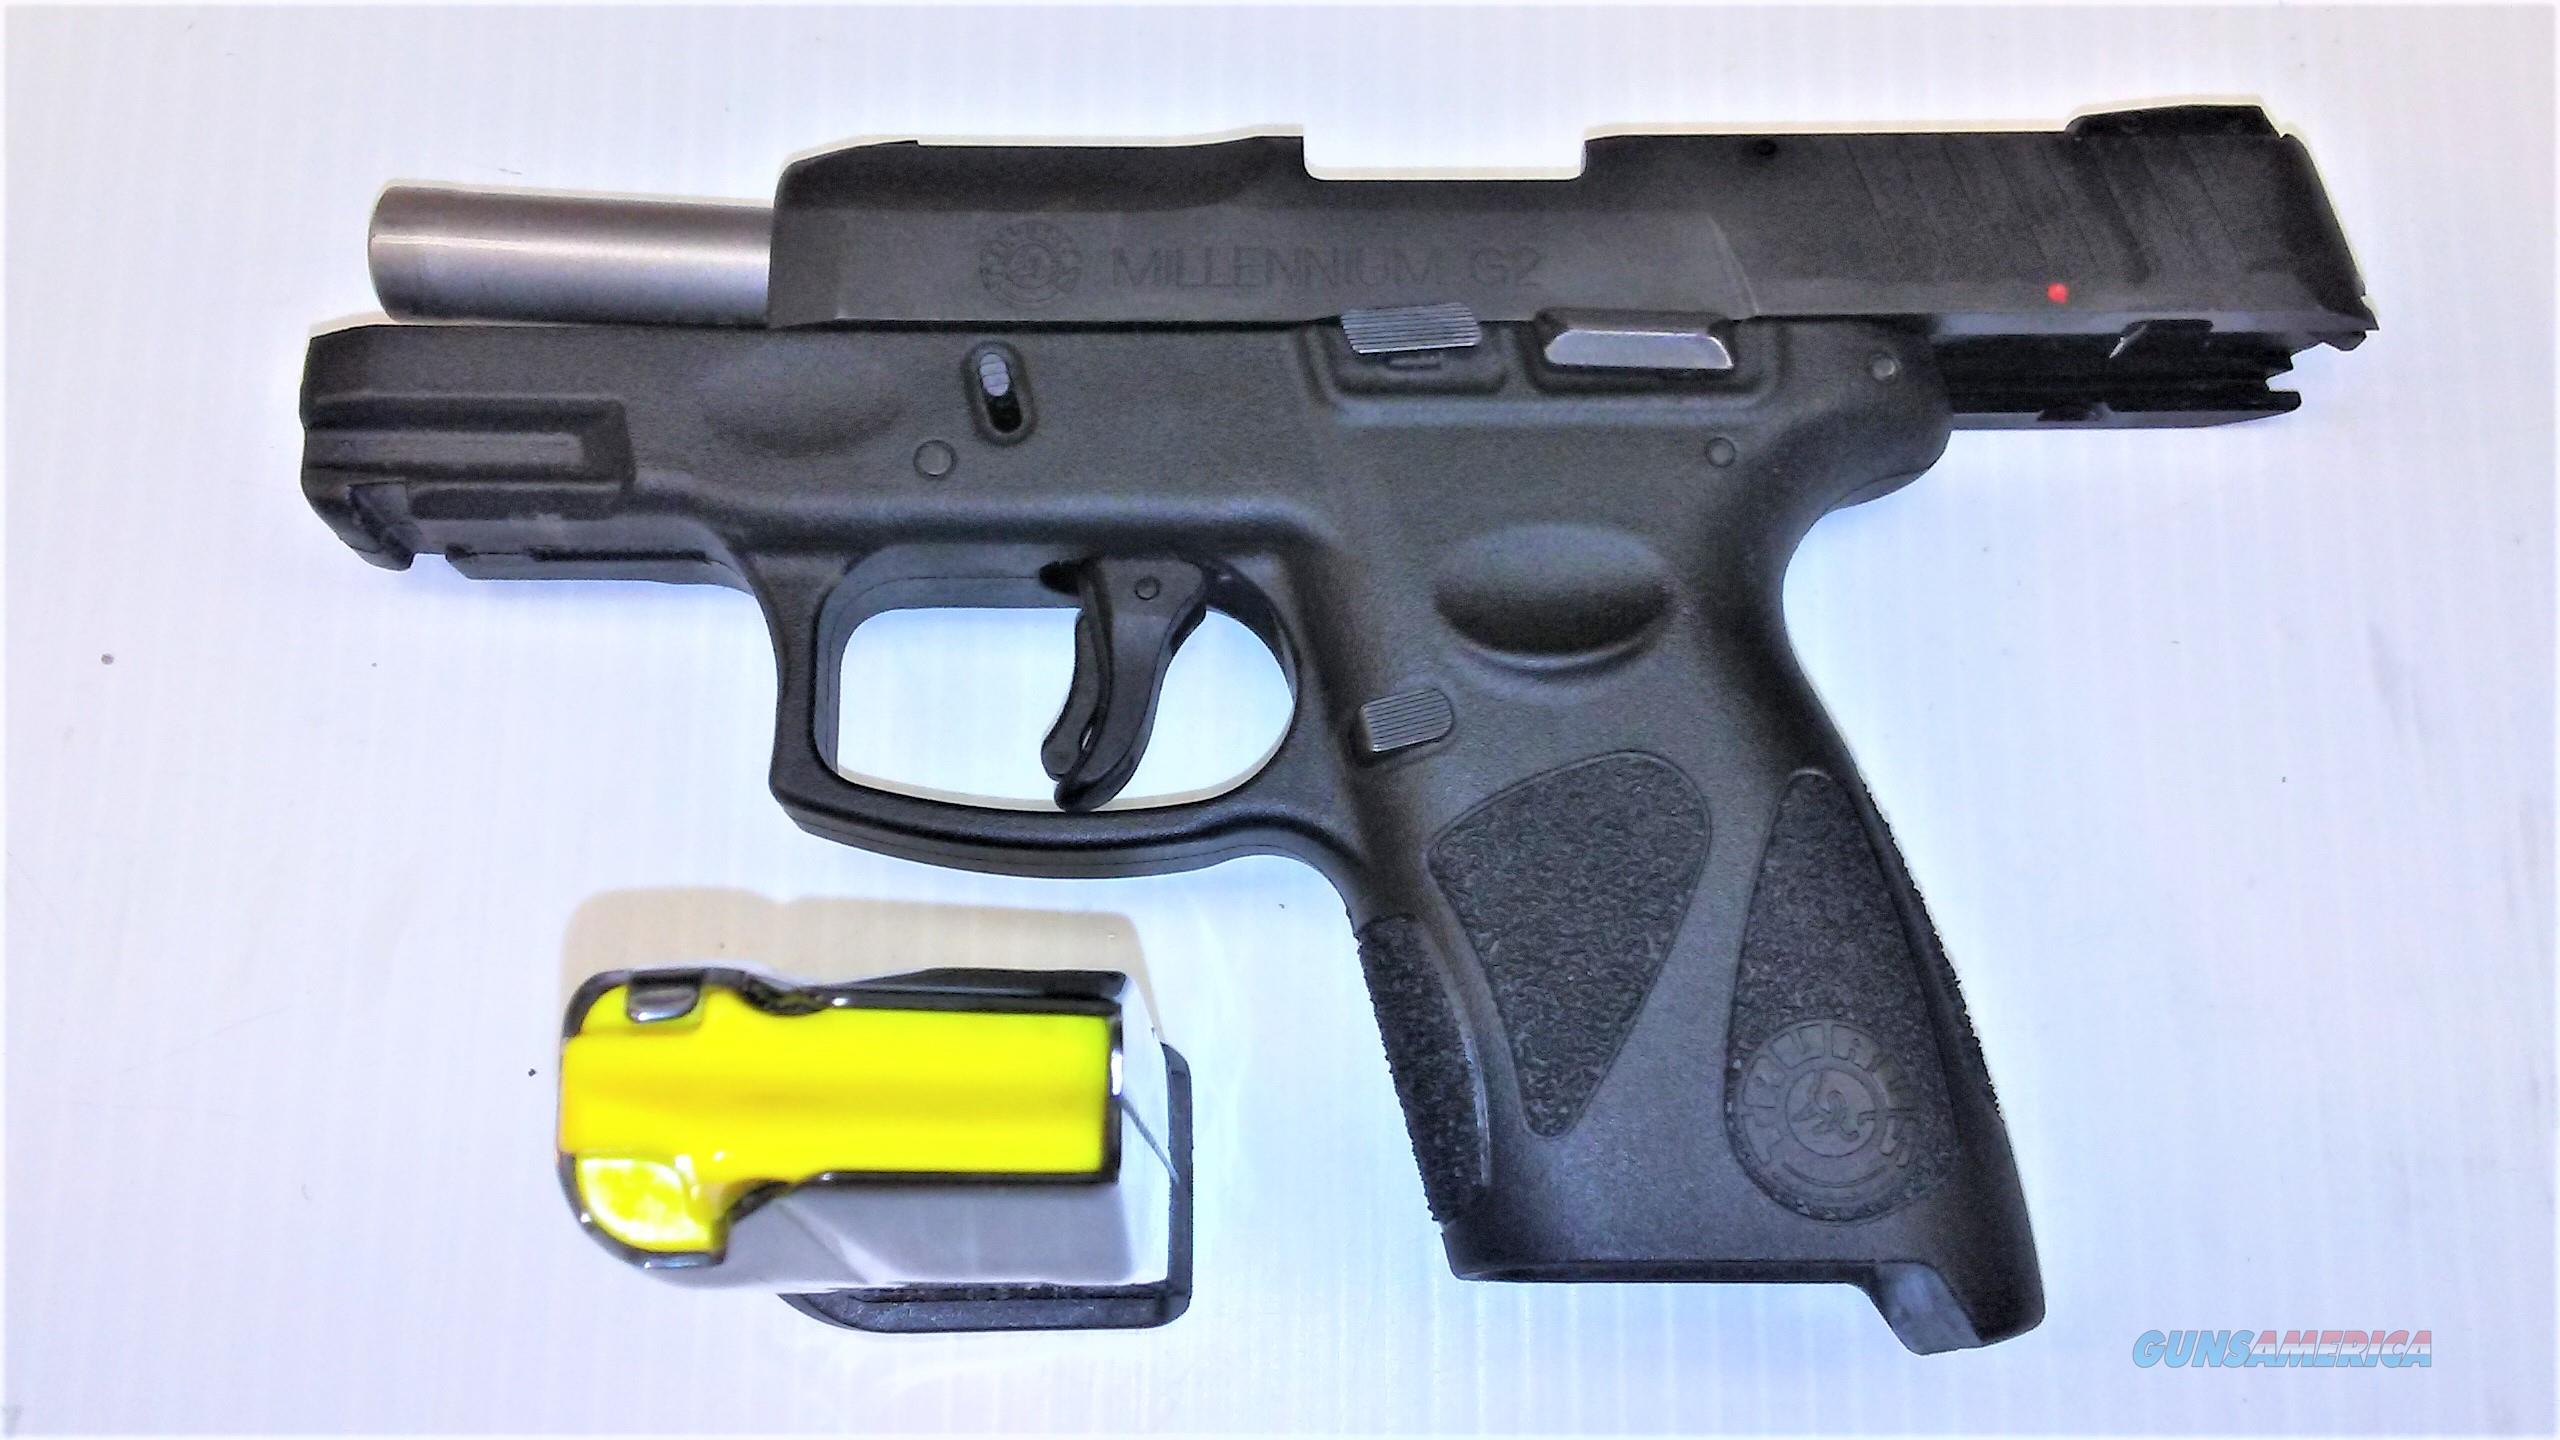 For Sale/Trade: NEW Taurus PT 111 Millenium G2 9mm 13 Shot  Guns > Pistols > Taurus Pistols > Semi Auto Pistols > Polymer Frame